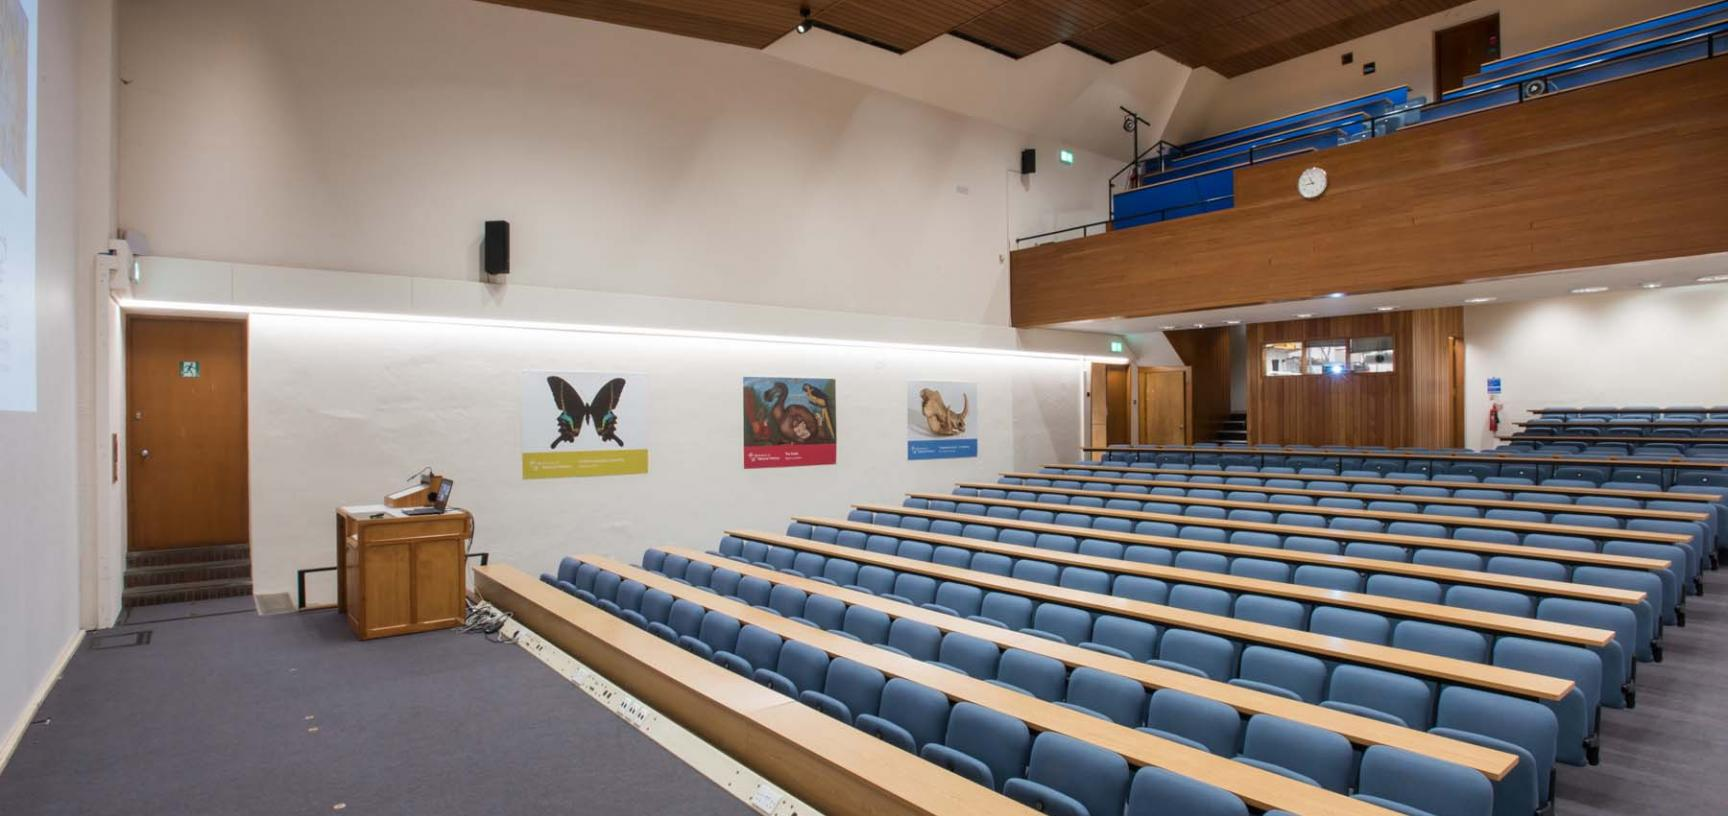 lecture theatre at the Museum of Natural History in Oxford